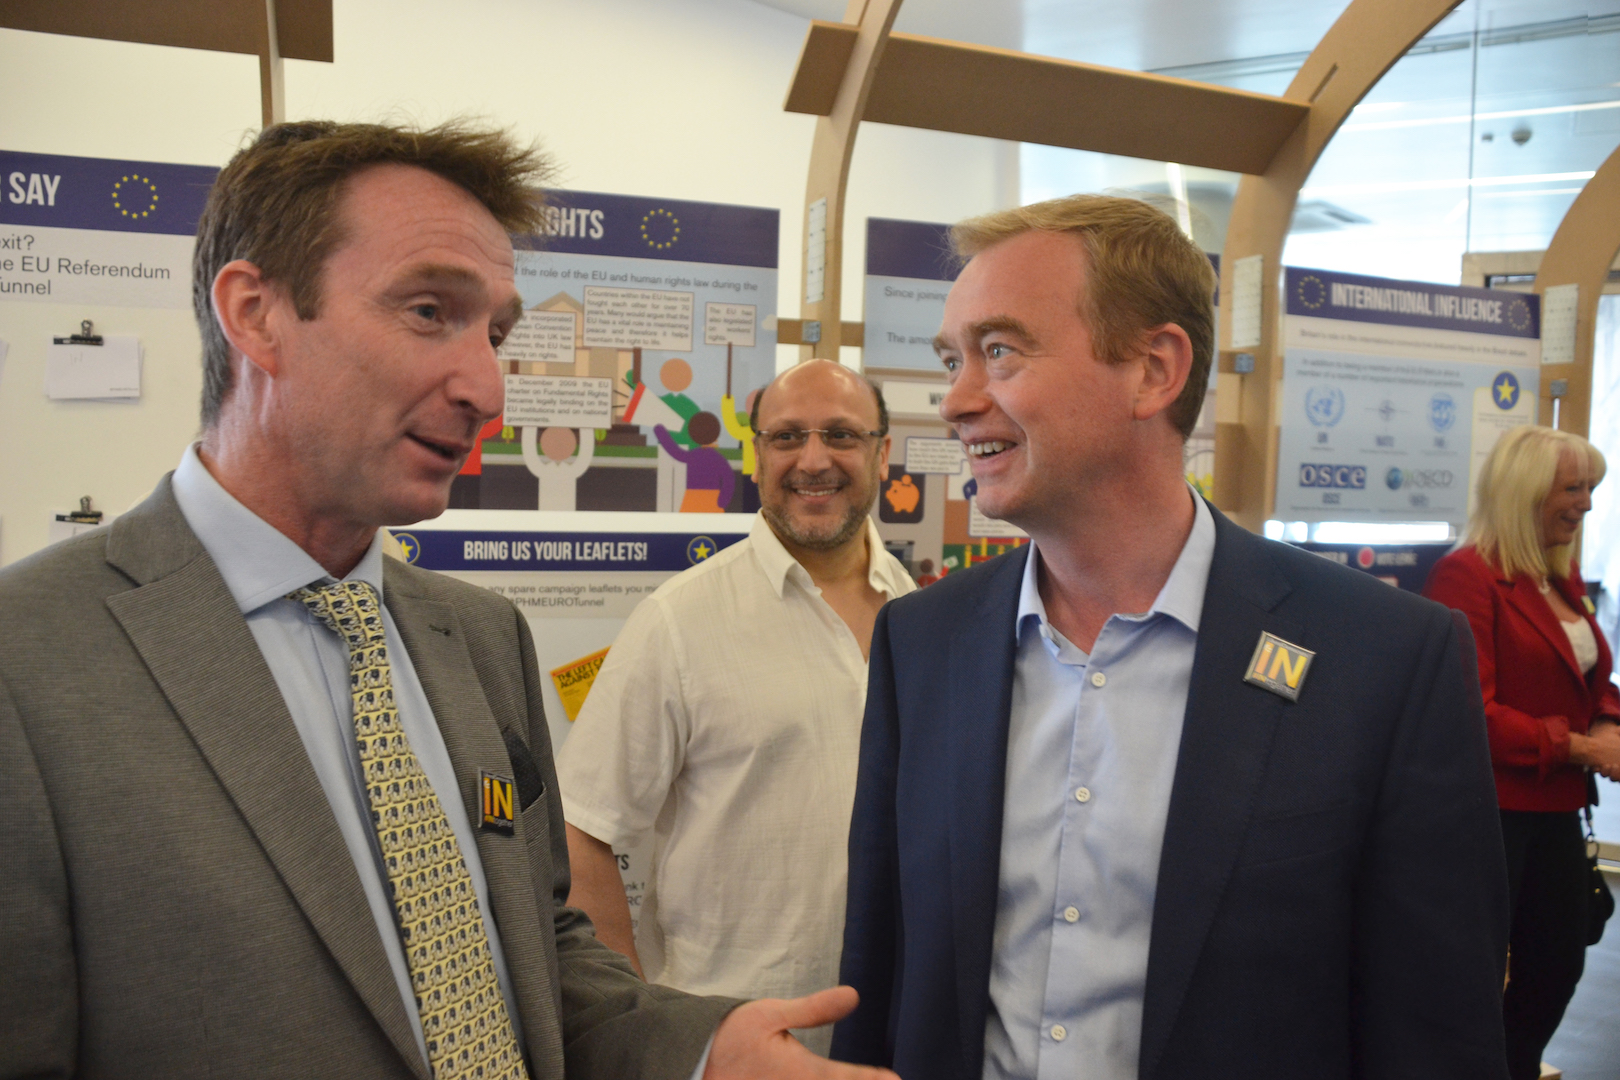 John Leech & Tim Farron at the IN OUT Euro Tunnel at the People's History Museum in Manchester